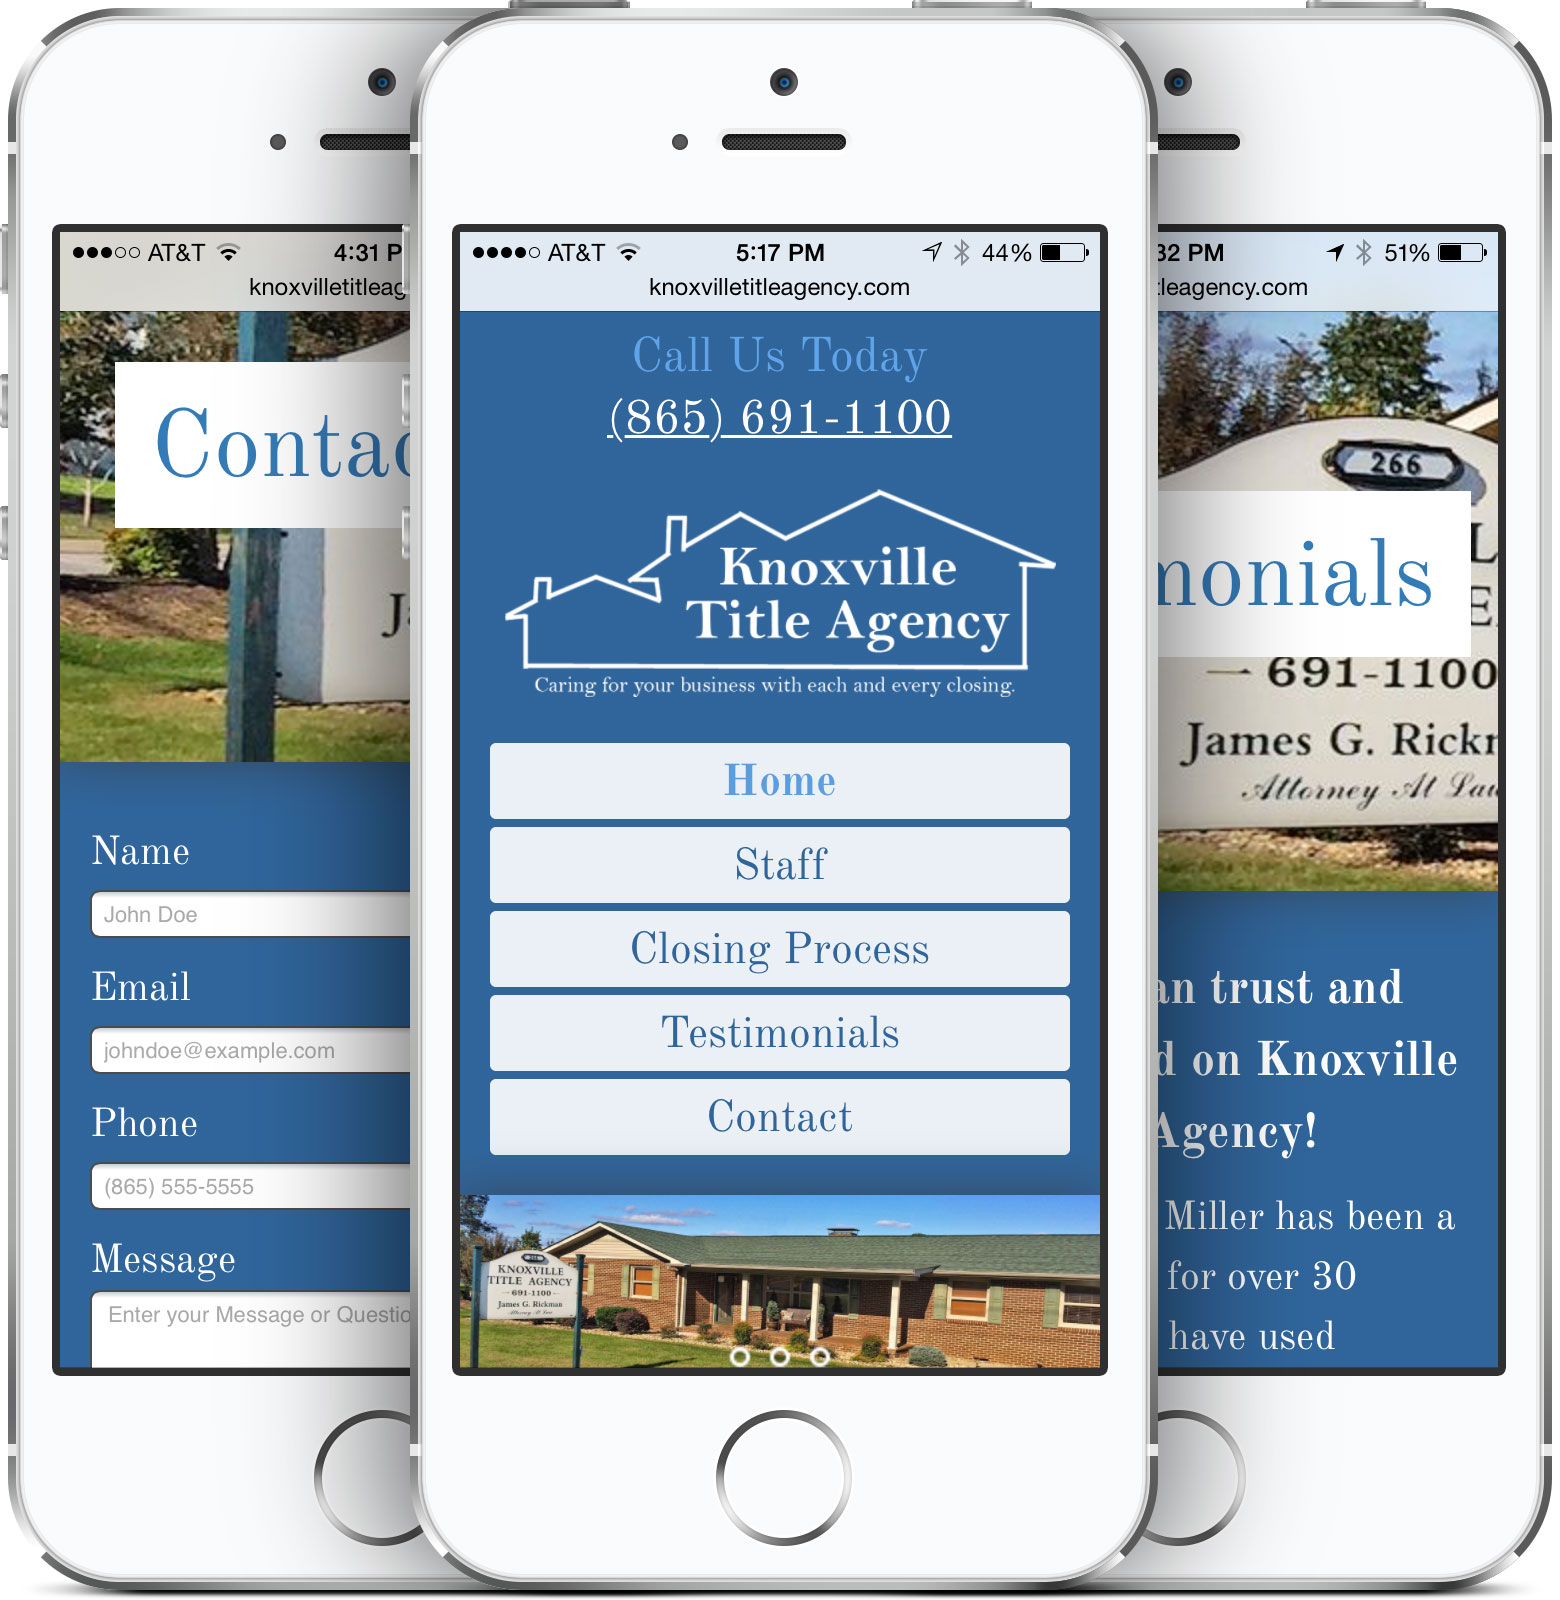 Knoxville Title Agency on a Smartphone